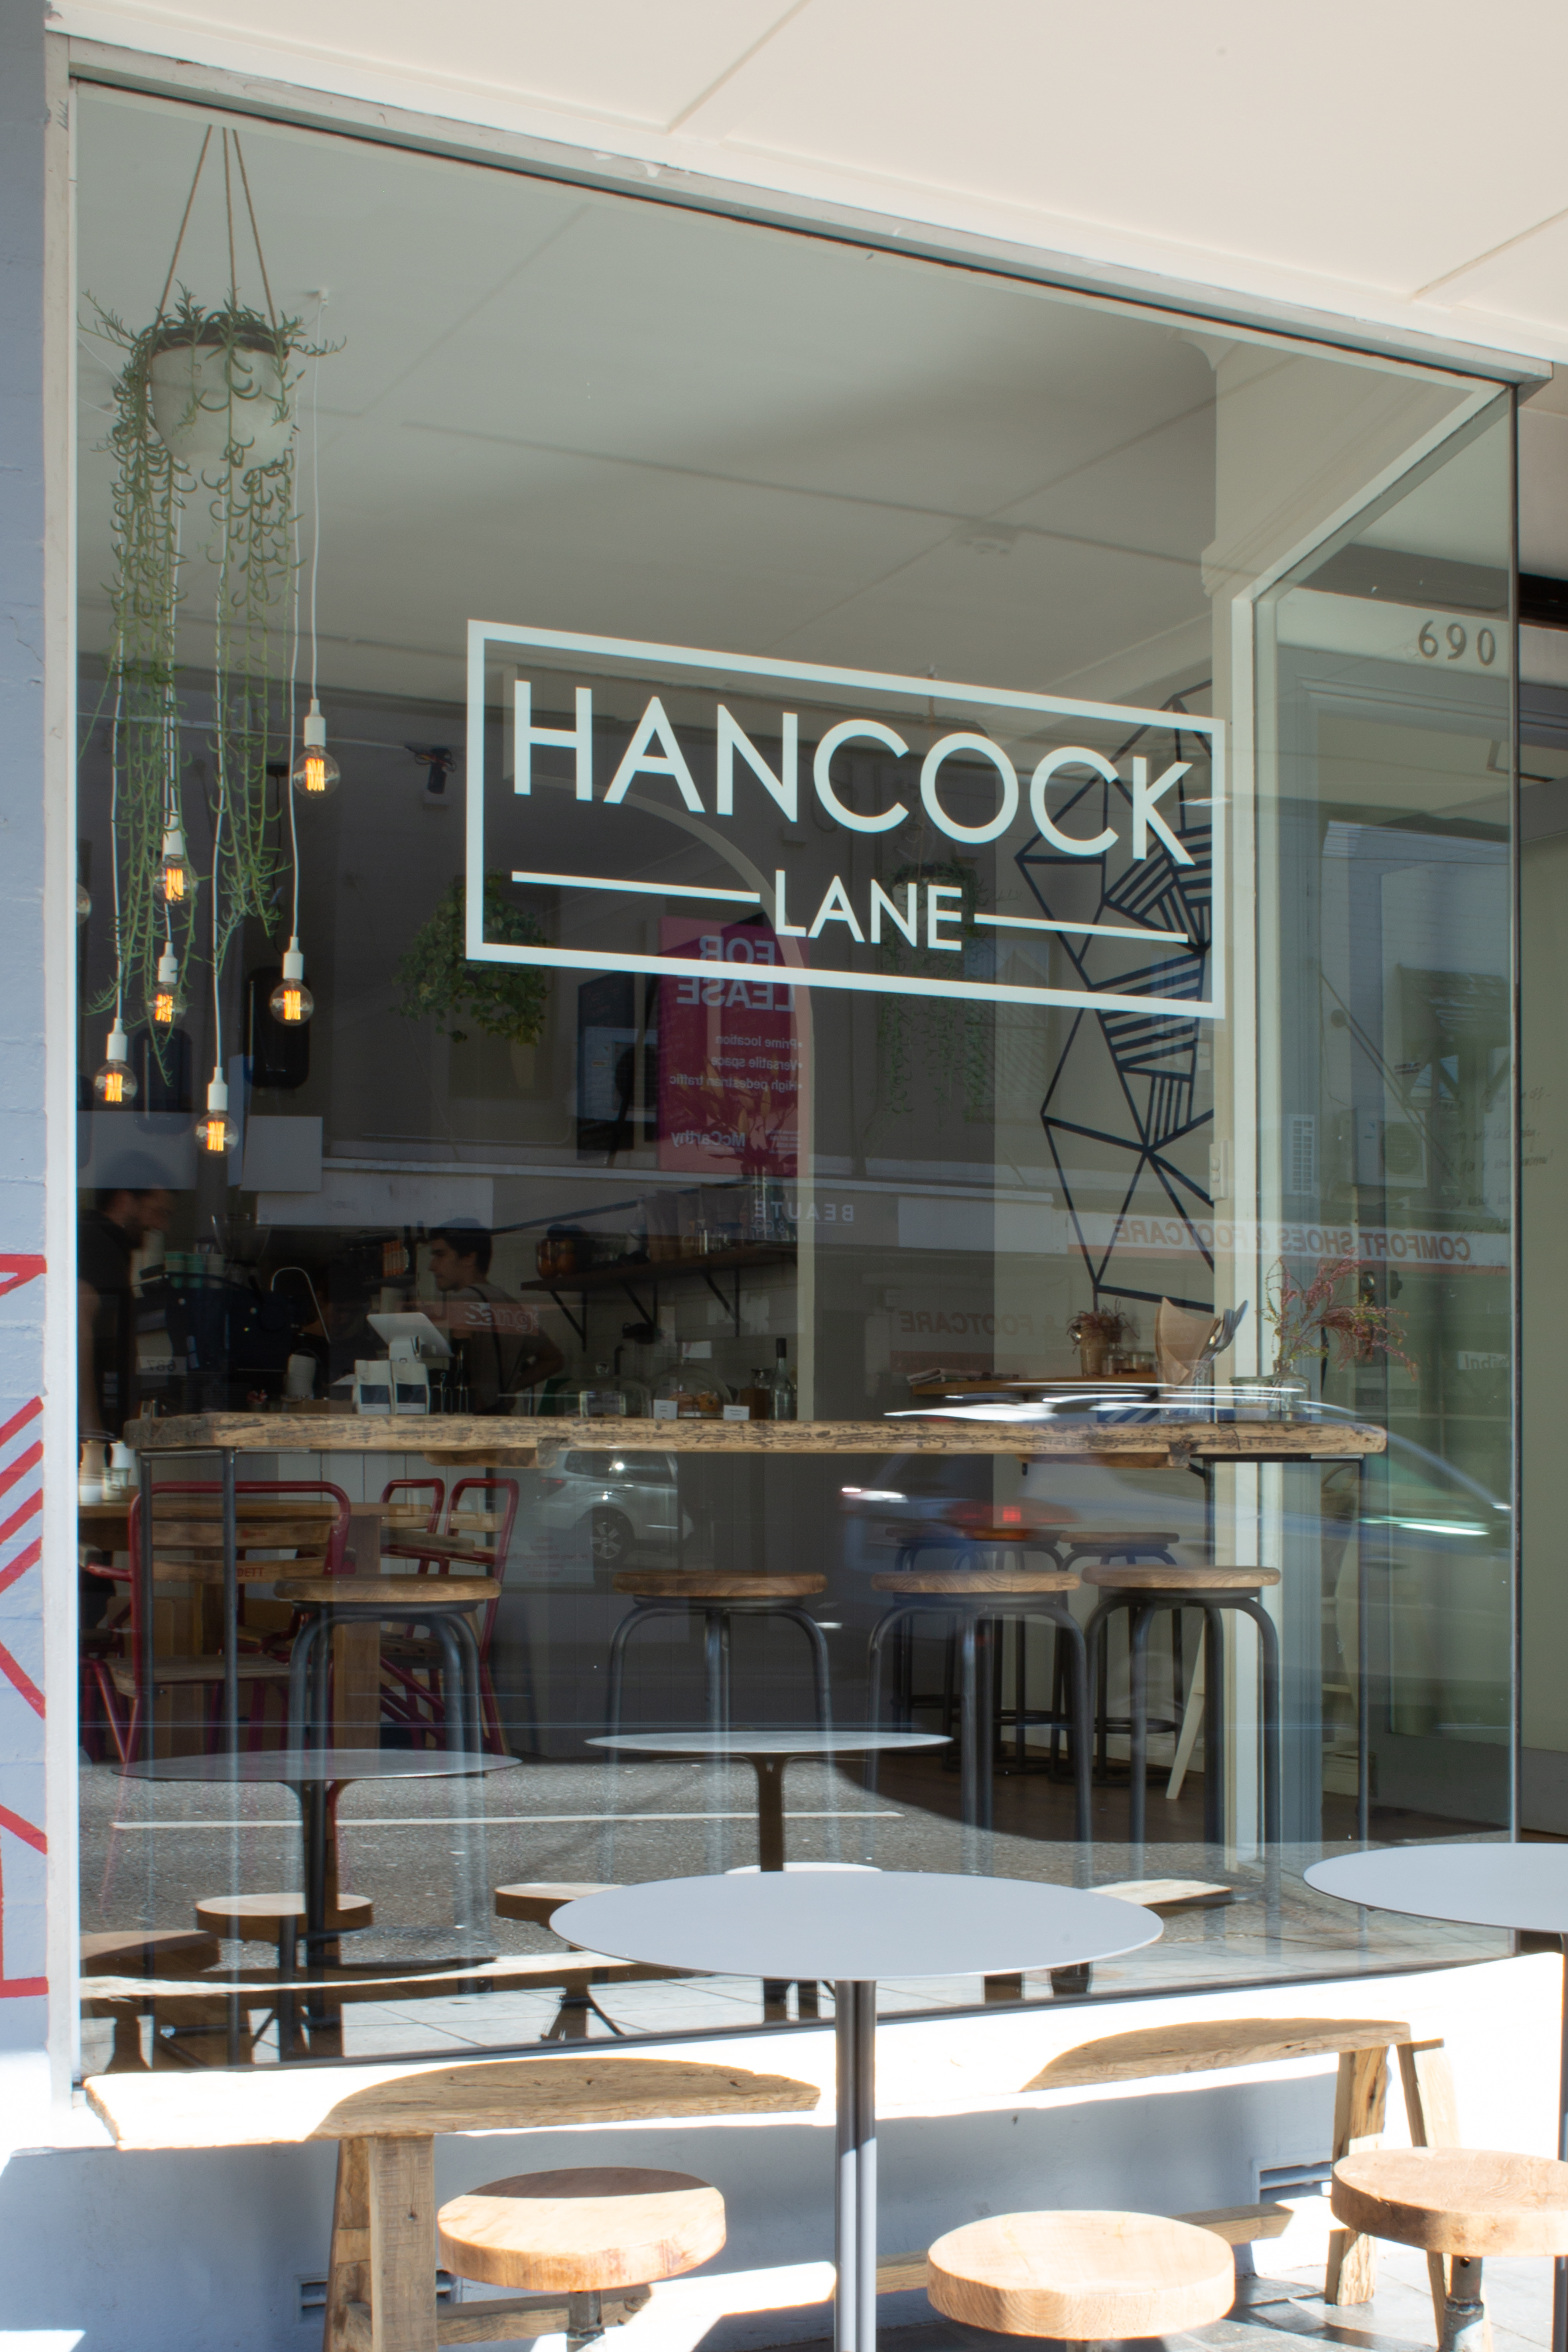 Hancock Lane Cafe - 2018